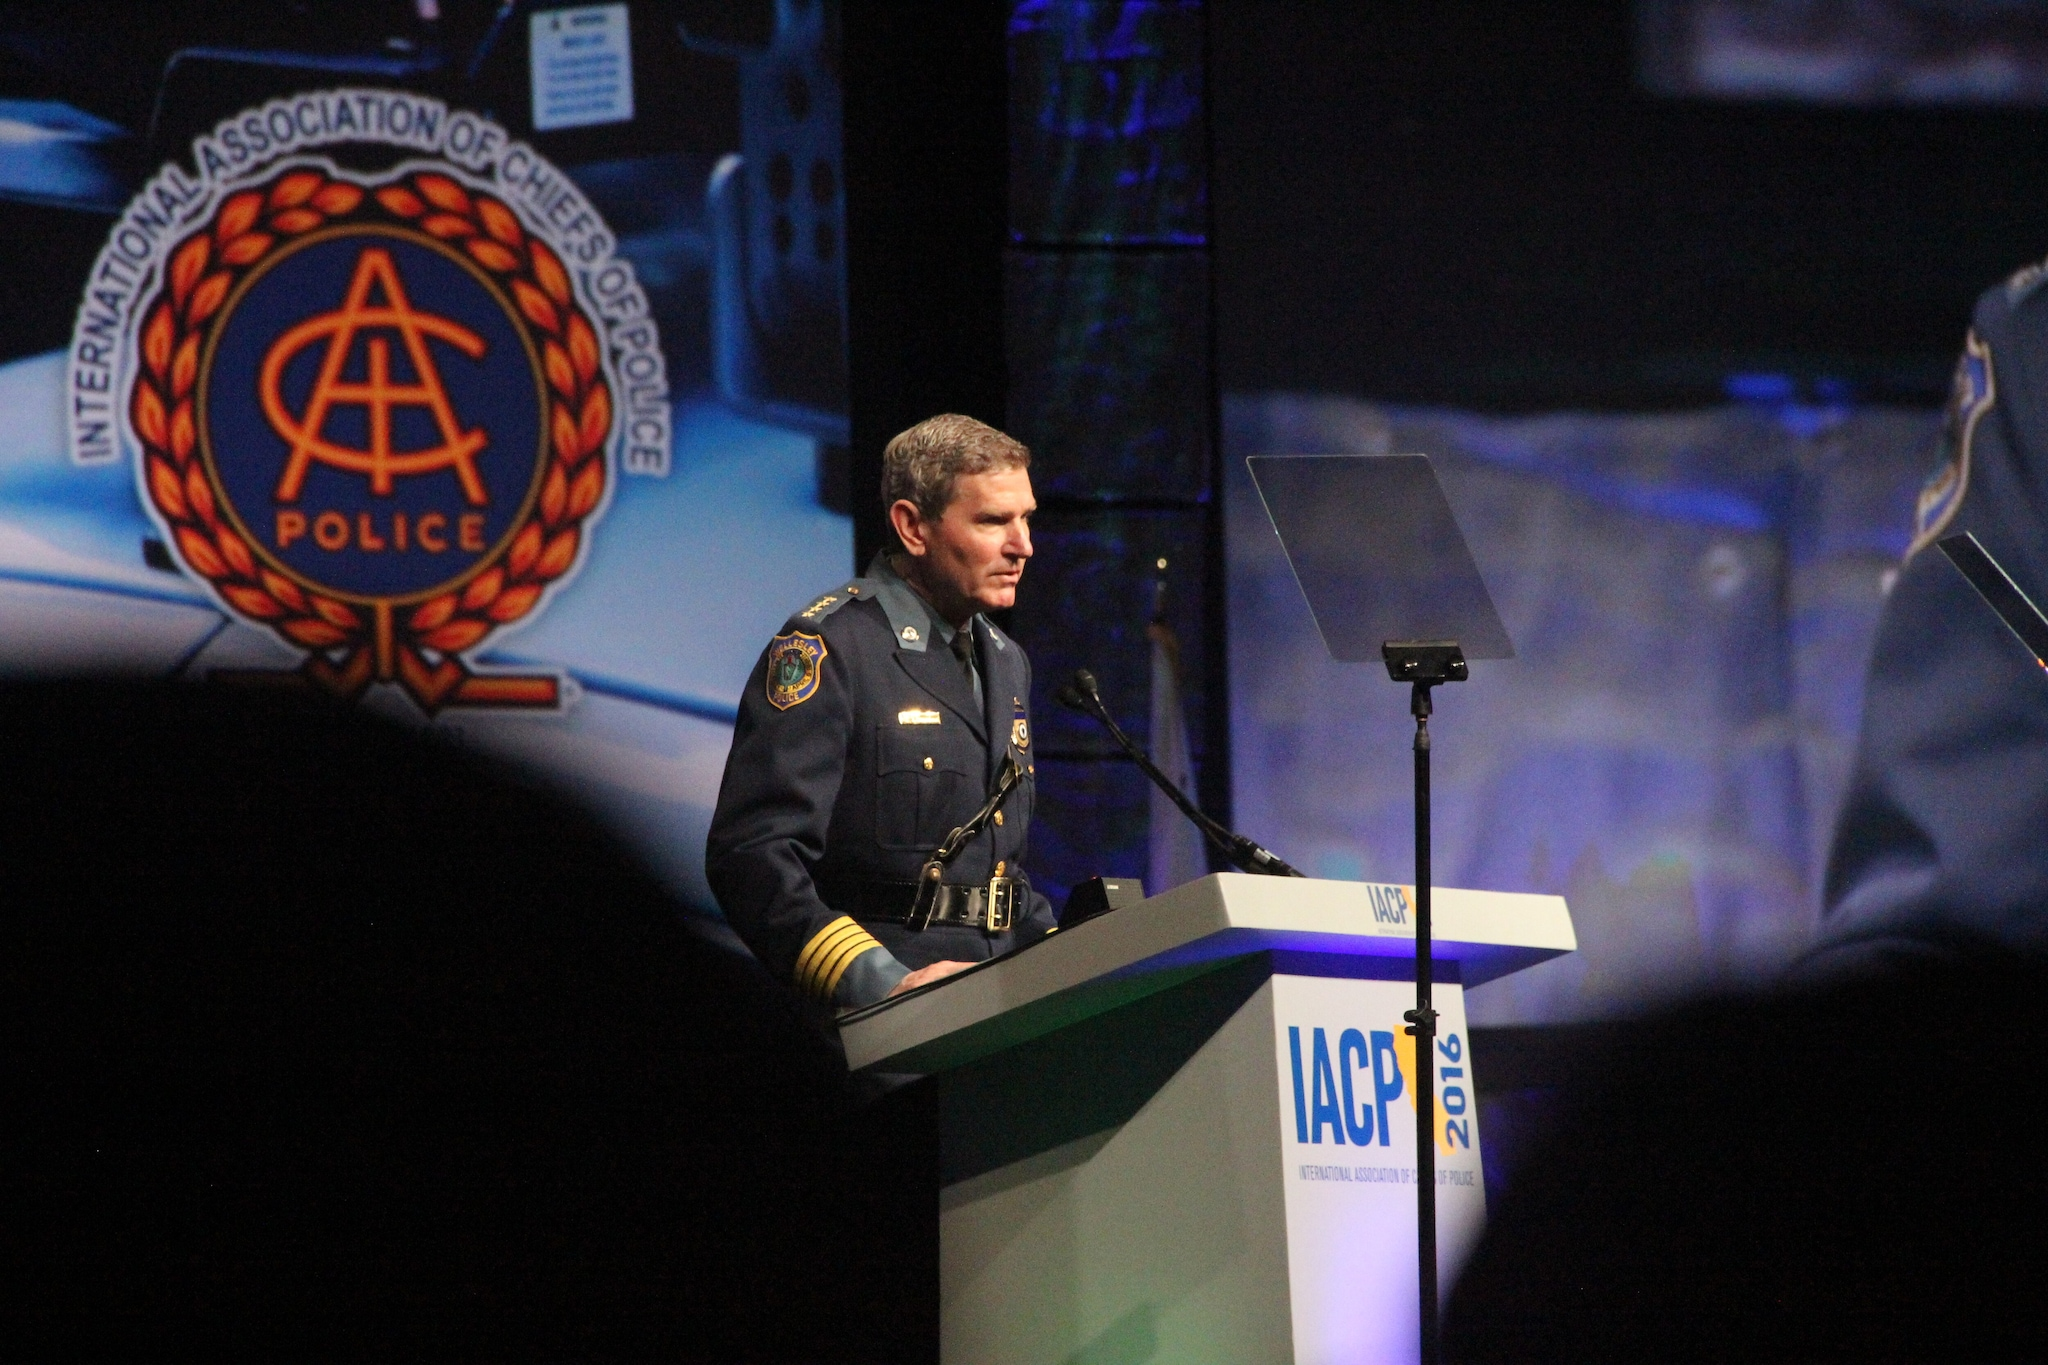 IACP head Terry Cunningham speaks to a crowd of thousands of law enforcement professionals and others during the National Association of Police Chiefs annual convention in San Diego Oct. 15-18, 2015. (Photo: Jared Morgan / Guns.com)